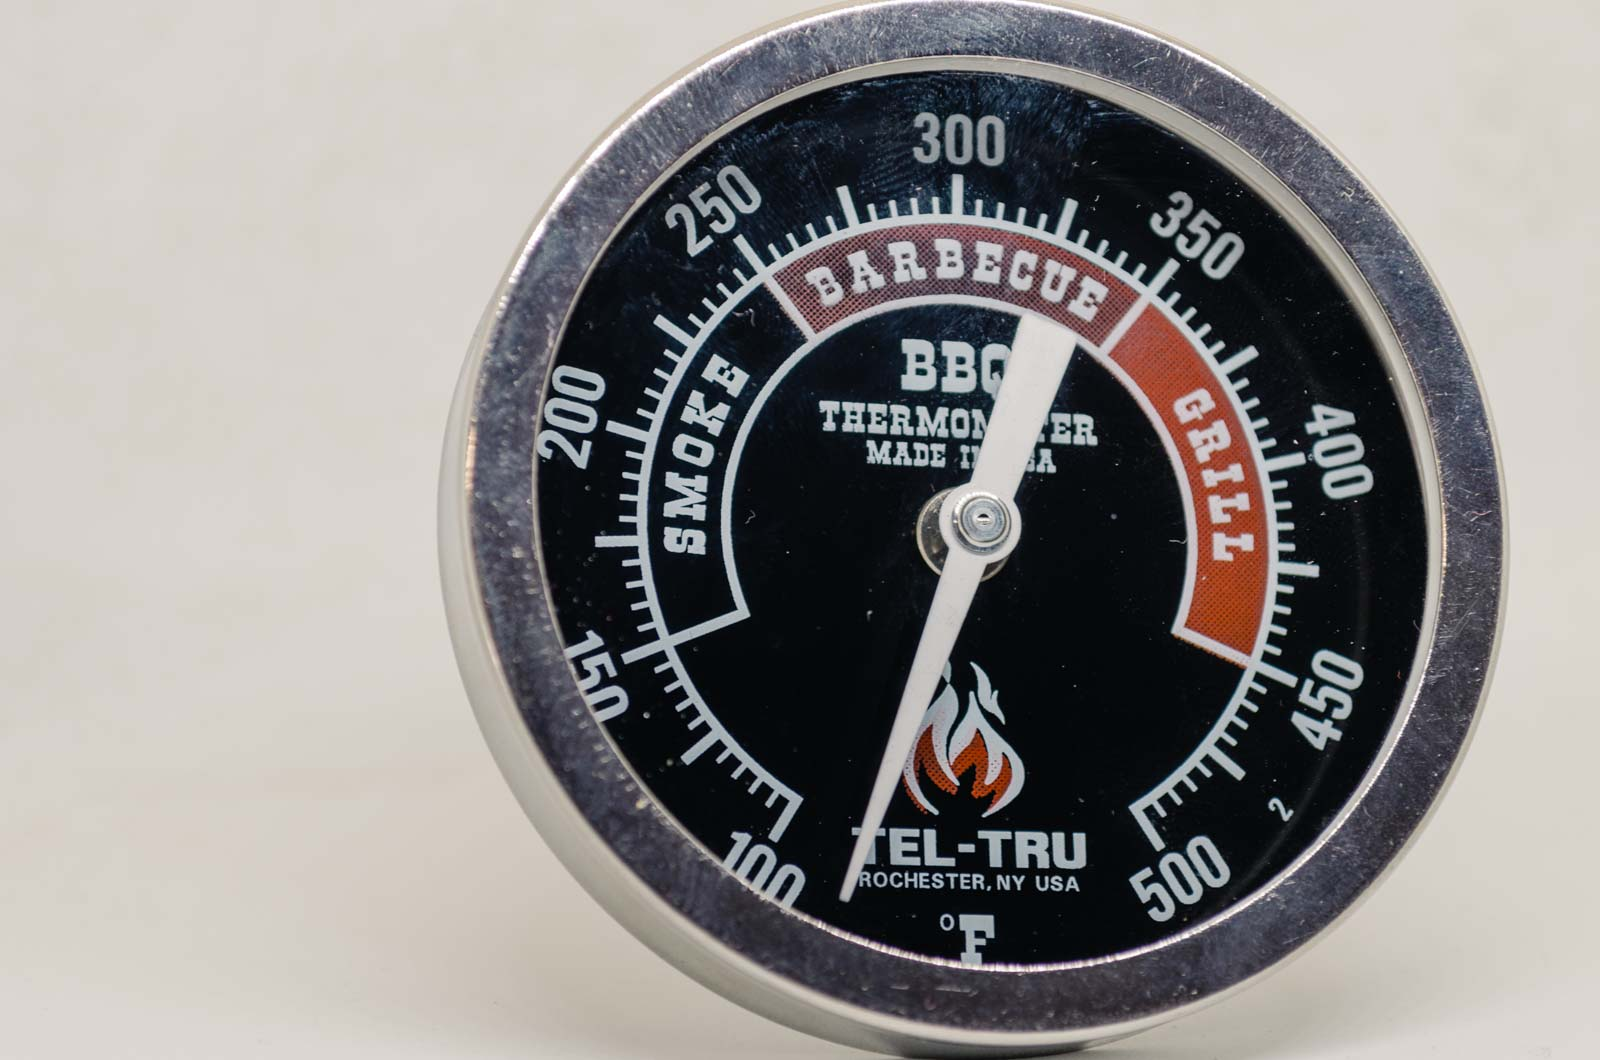 "Tel-Tru 2.5"" Stem BQ300 BBQ Thermometer RED/BLACK"